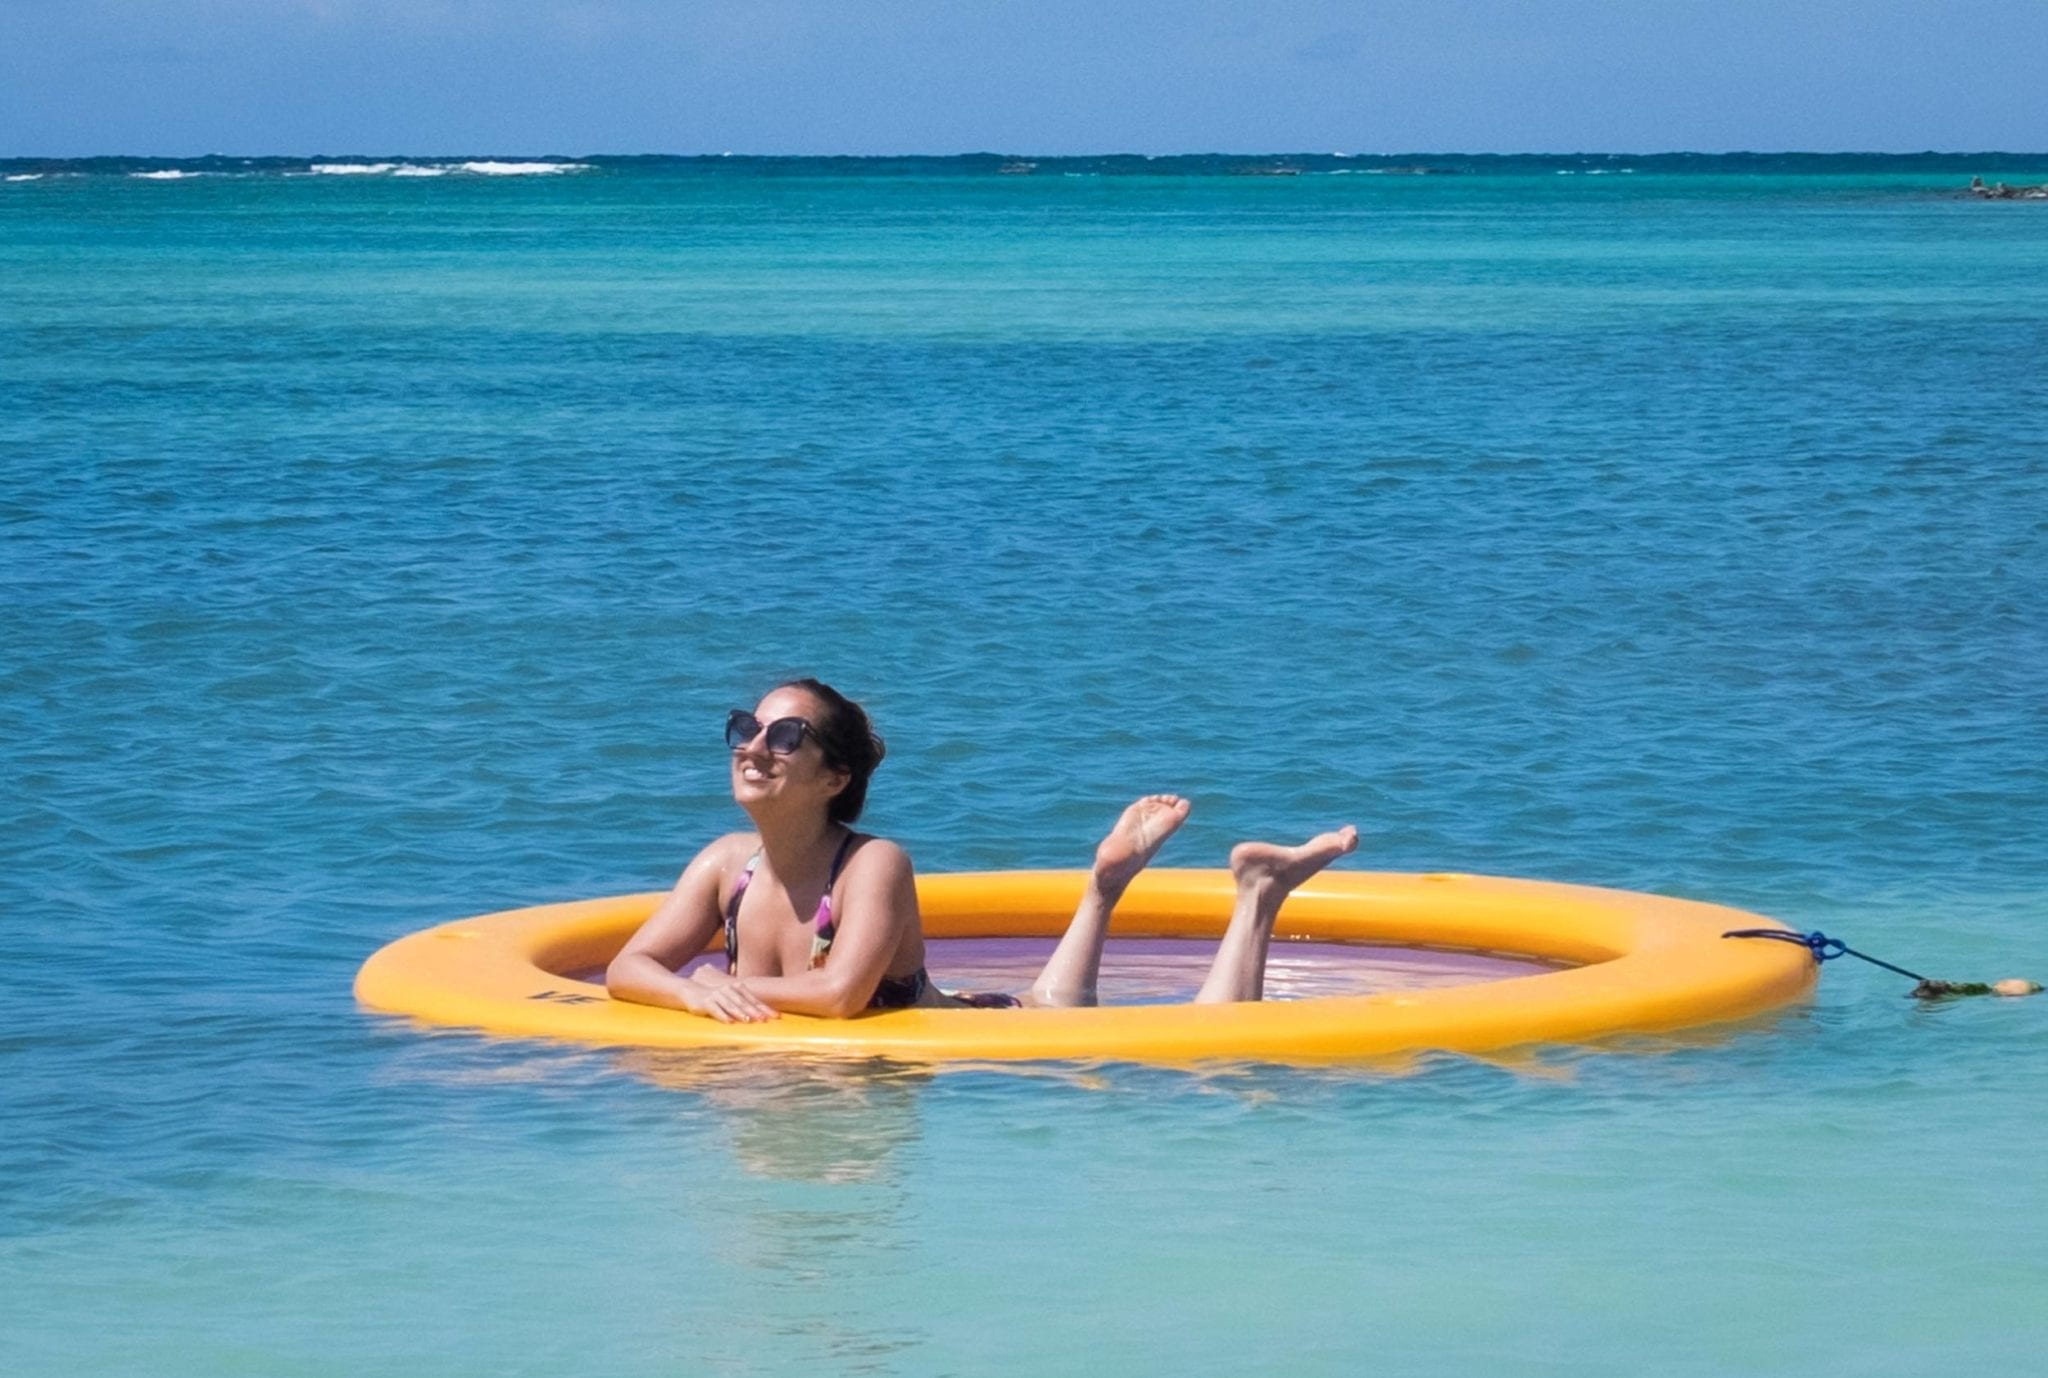 """Kate is in a yellow """"water hammock"""" -- a round hammock-like device in the middle of the turquoise Caribbean Sea underneath a blue sky with a few clouds. Kate is wearing sunglasses and is on her elbows with her legs playfully in the air."""